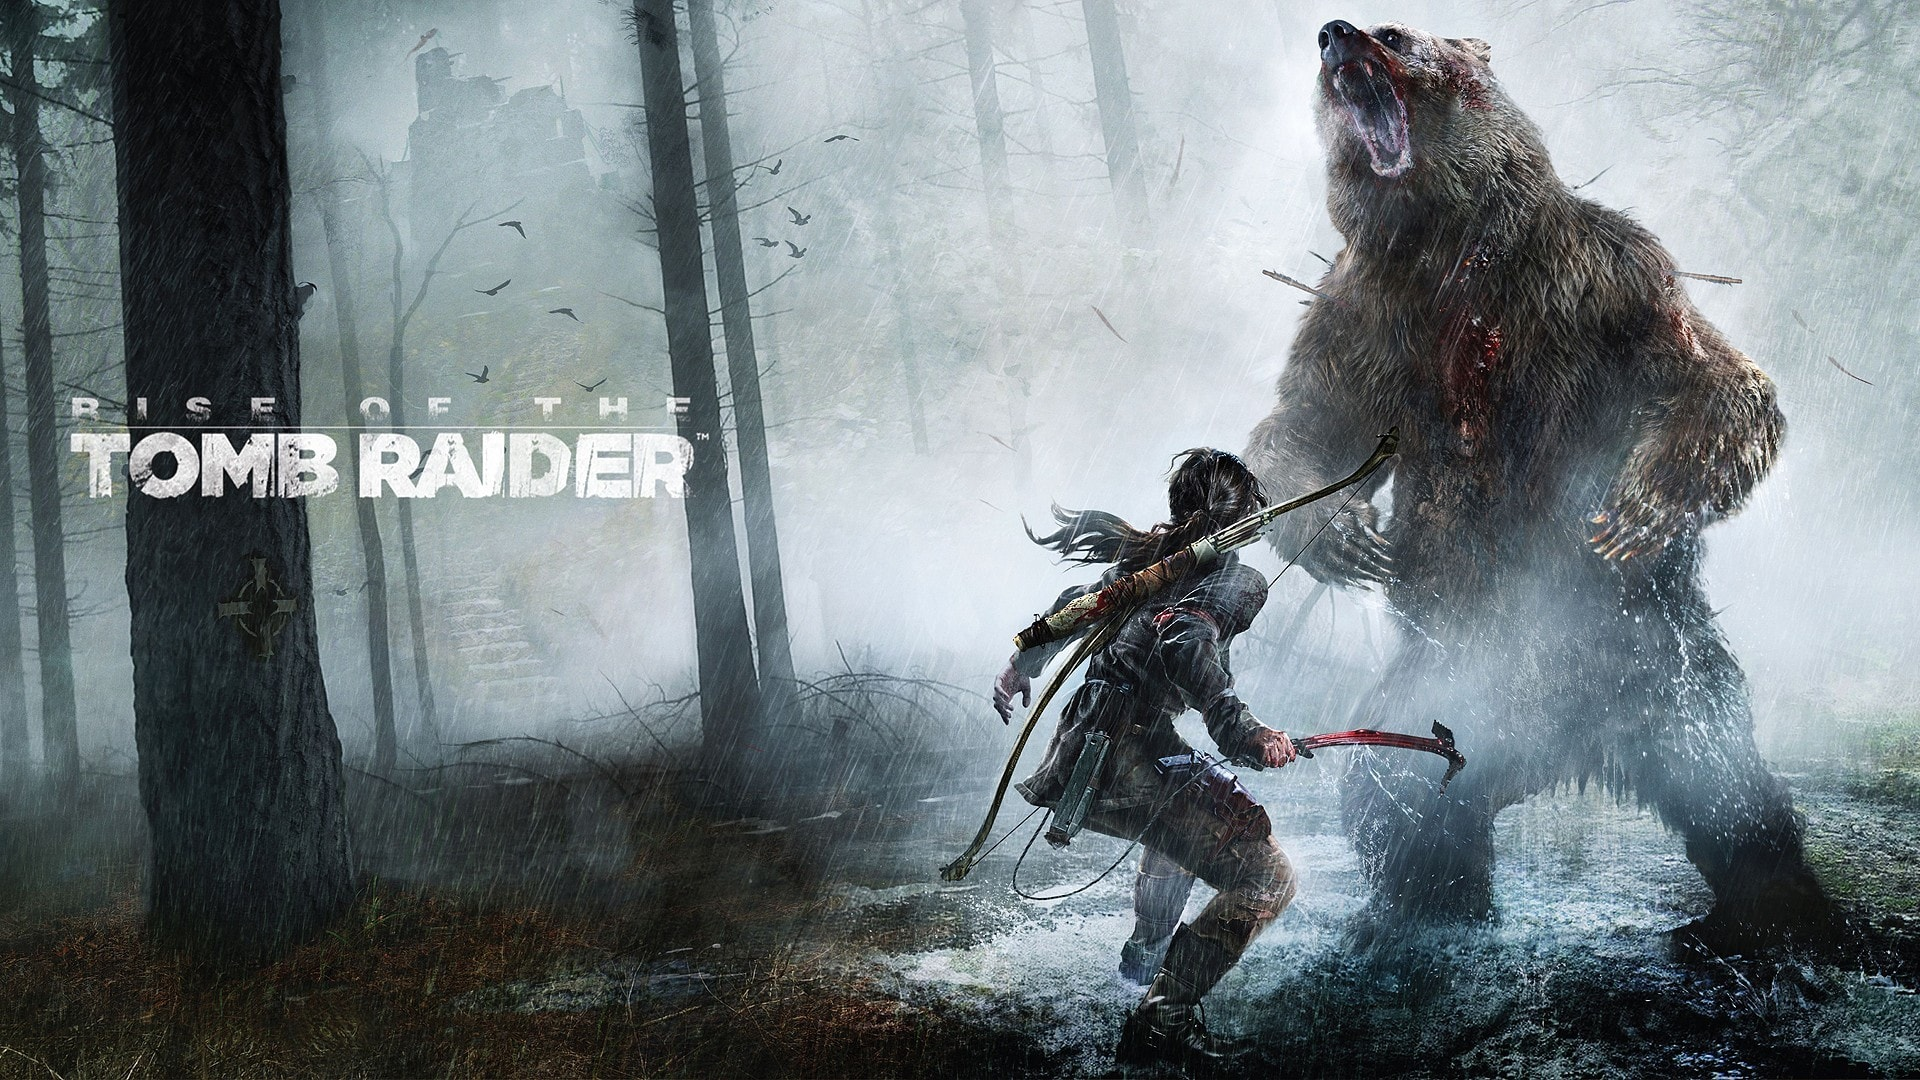 Rise of the Tomb Raider HQ wallpapers